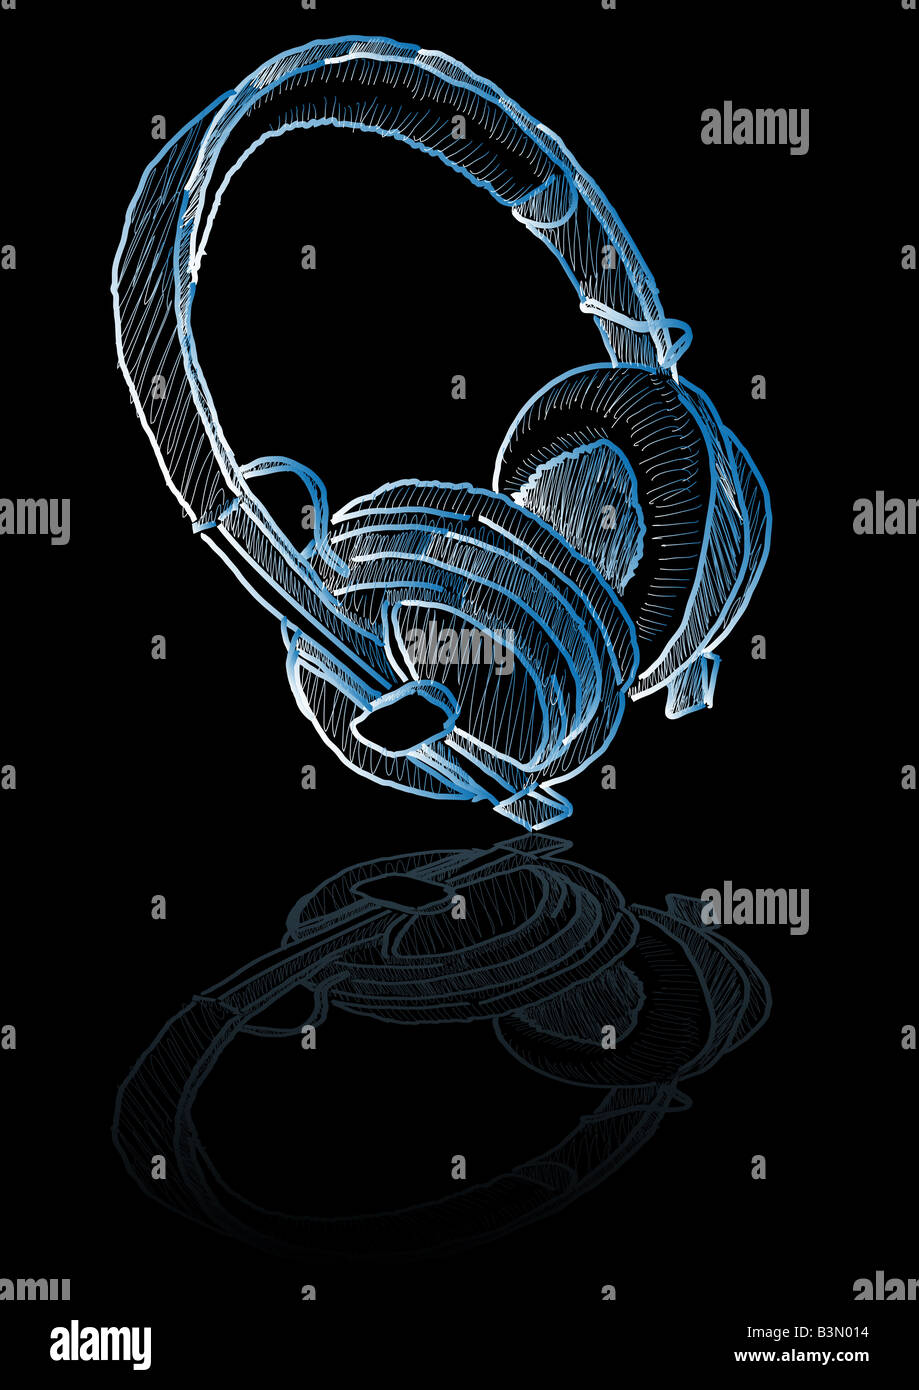 Abstract vector pencil drawing of a pair of headphones - Stock Image